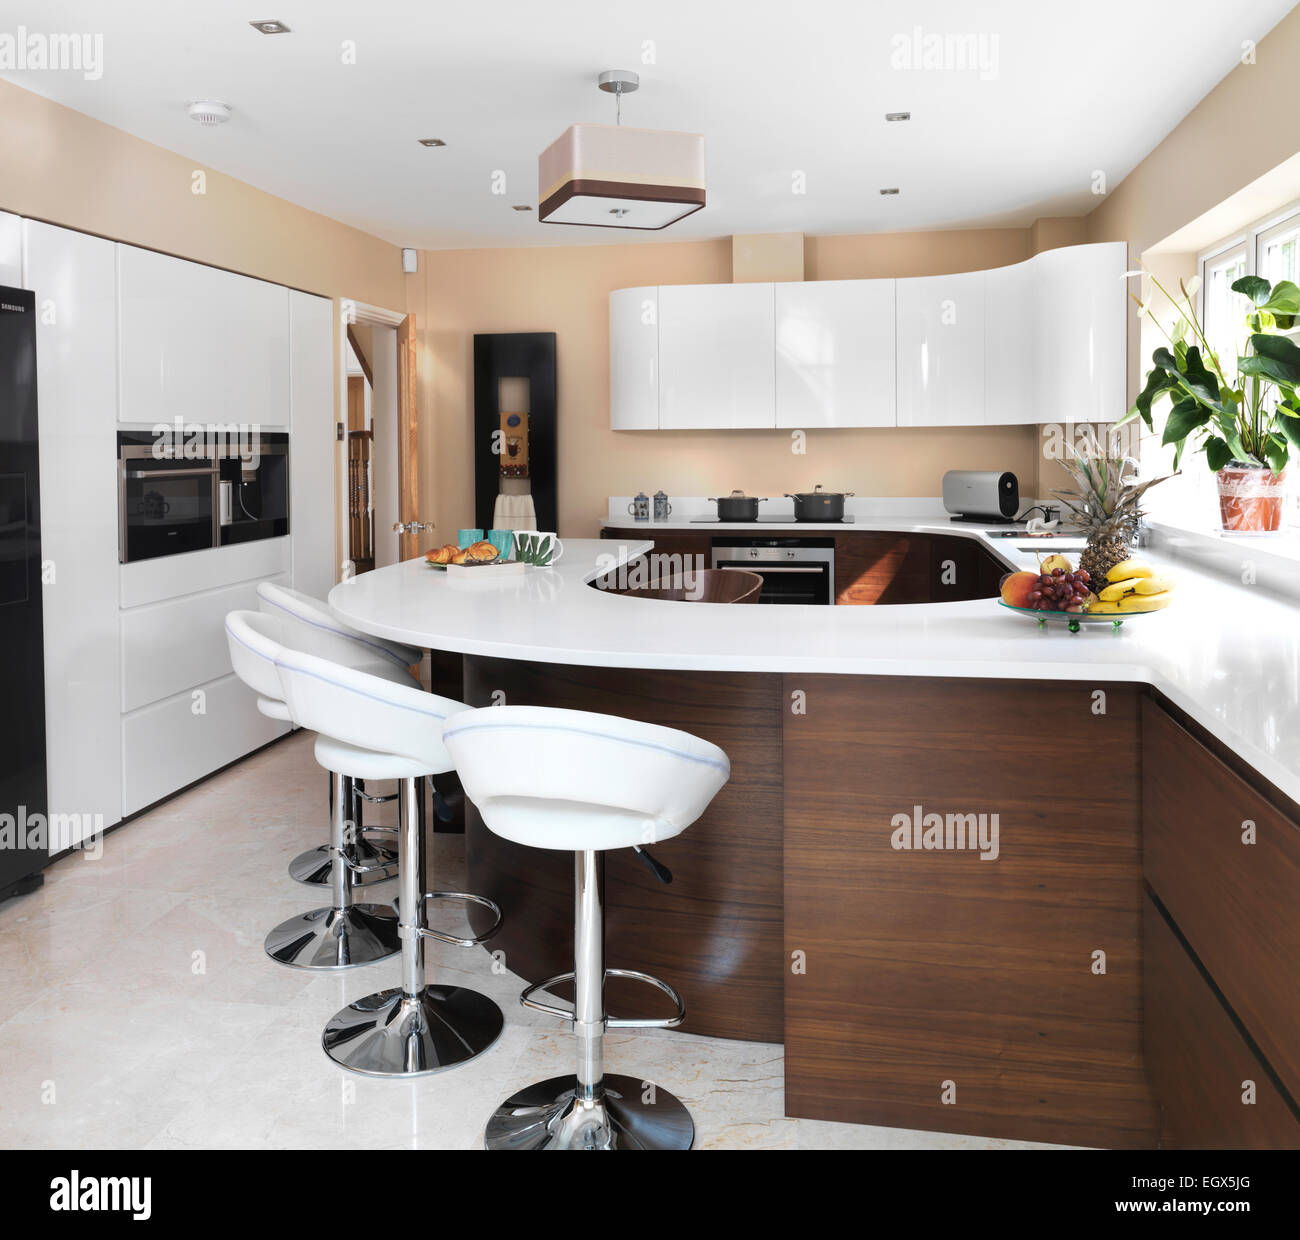 Tolle Moderne Bar Nach Hause Ideen - Images for inspirierende Ideen ...